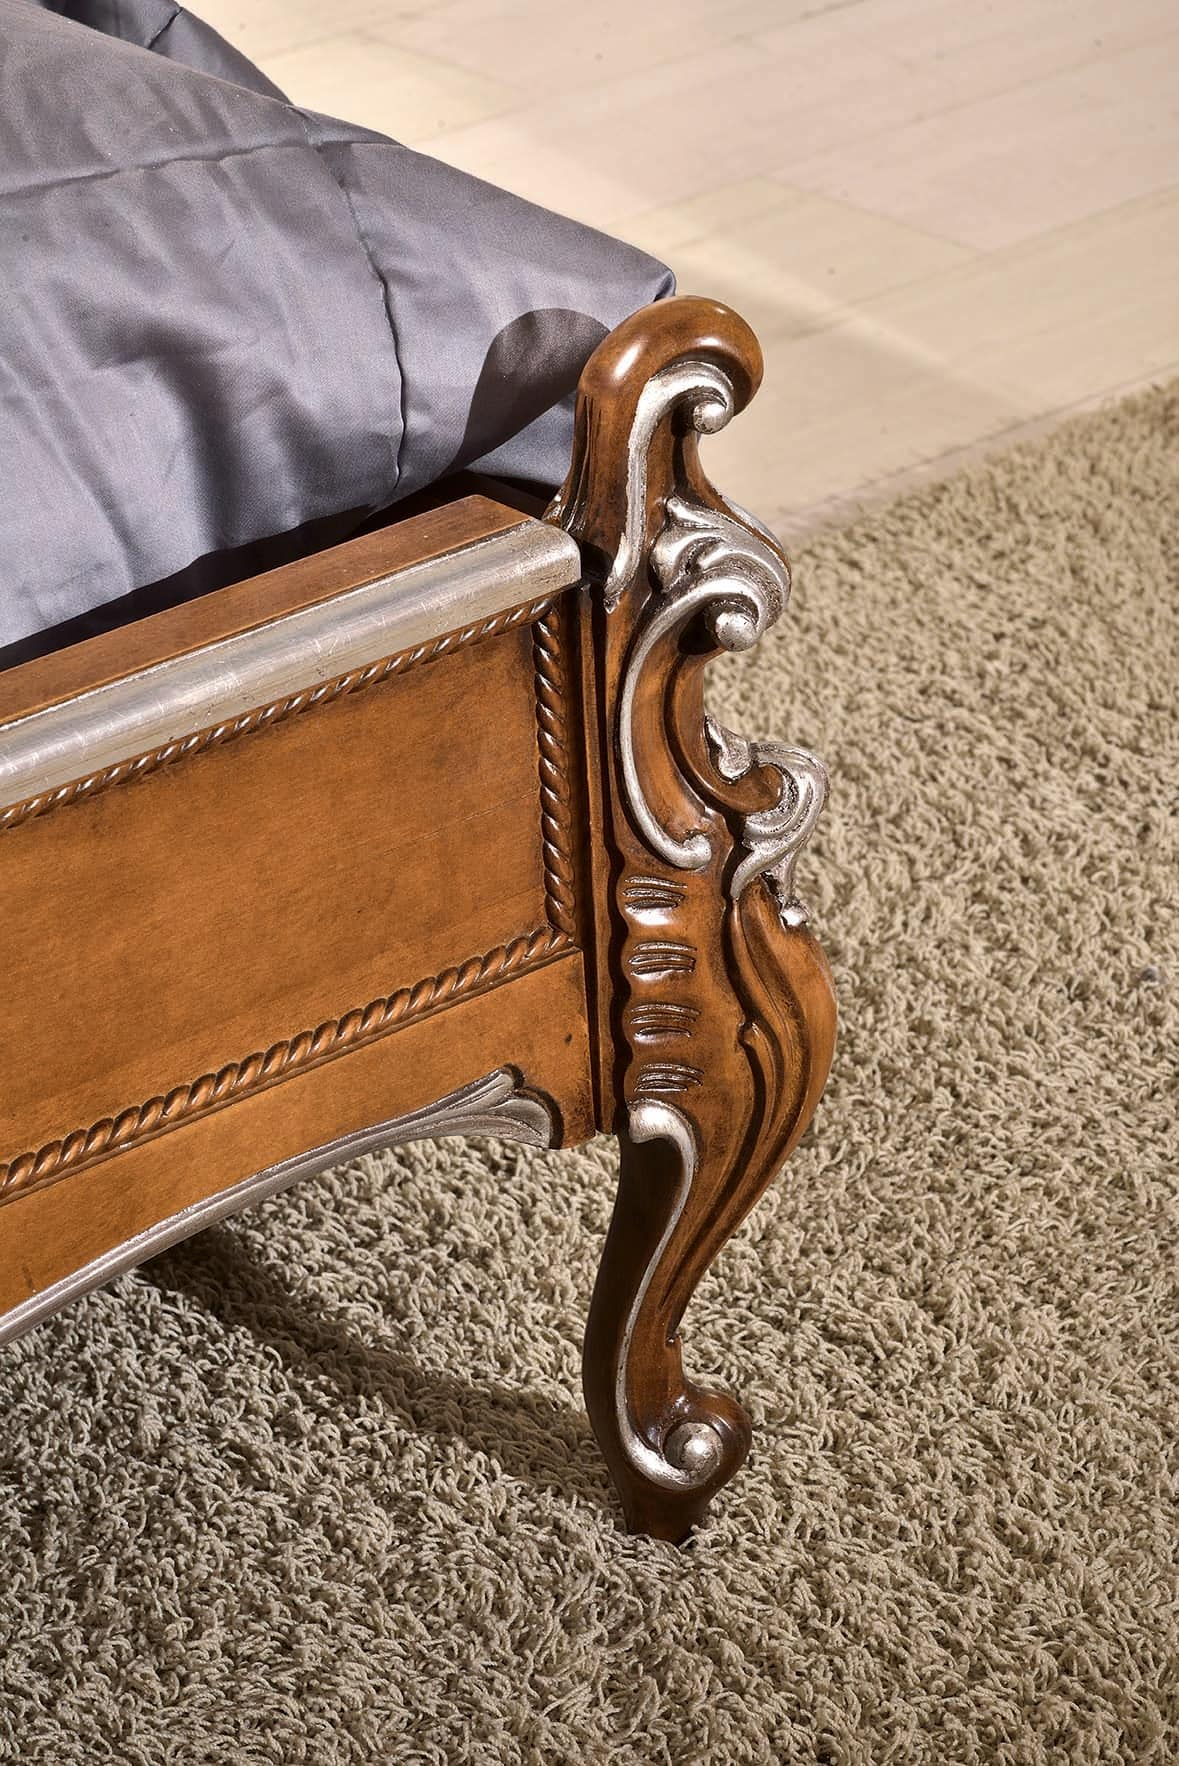 Art. 803, Classic double bed with carved headboard